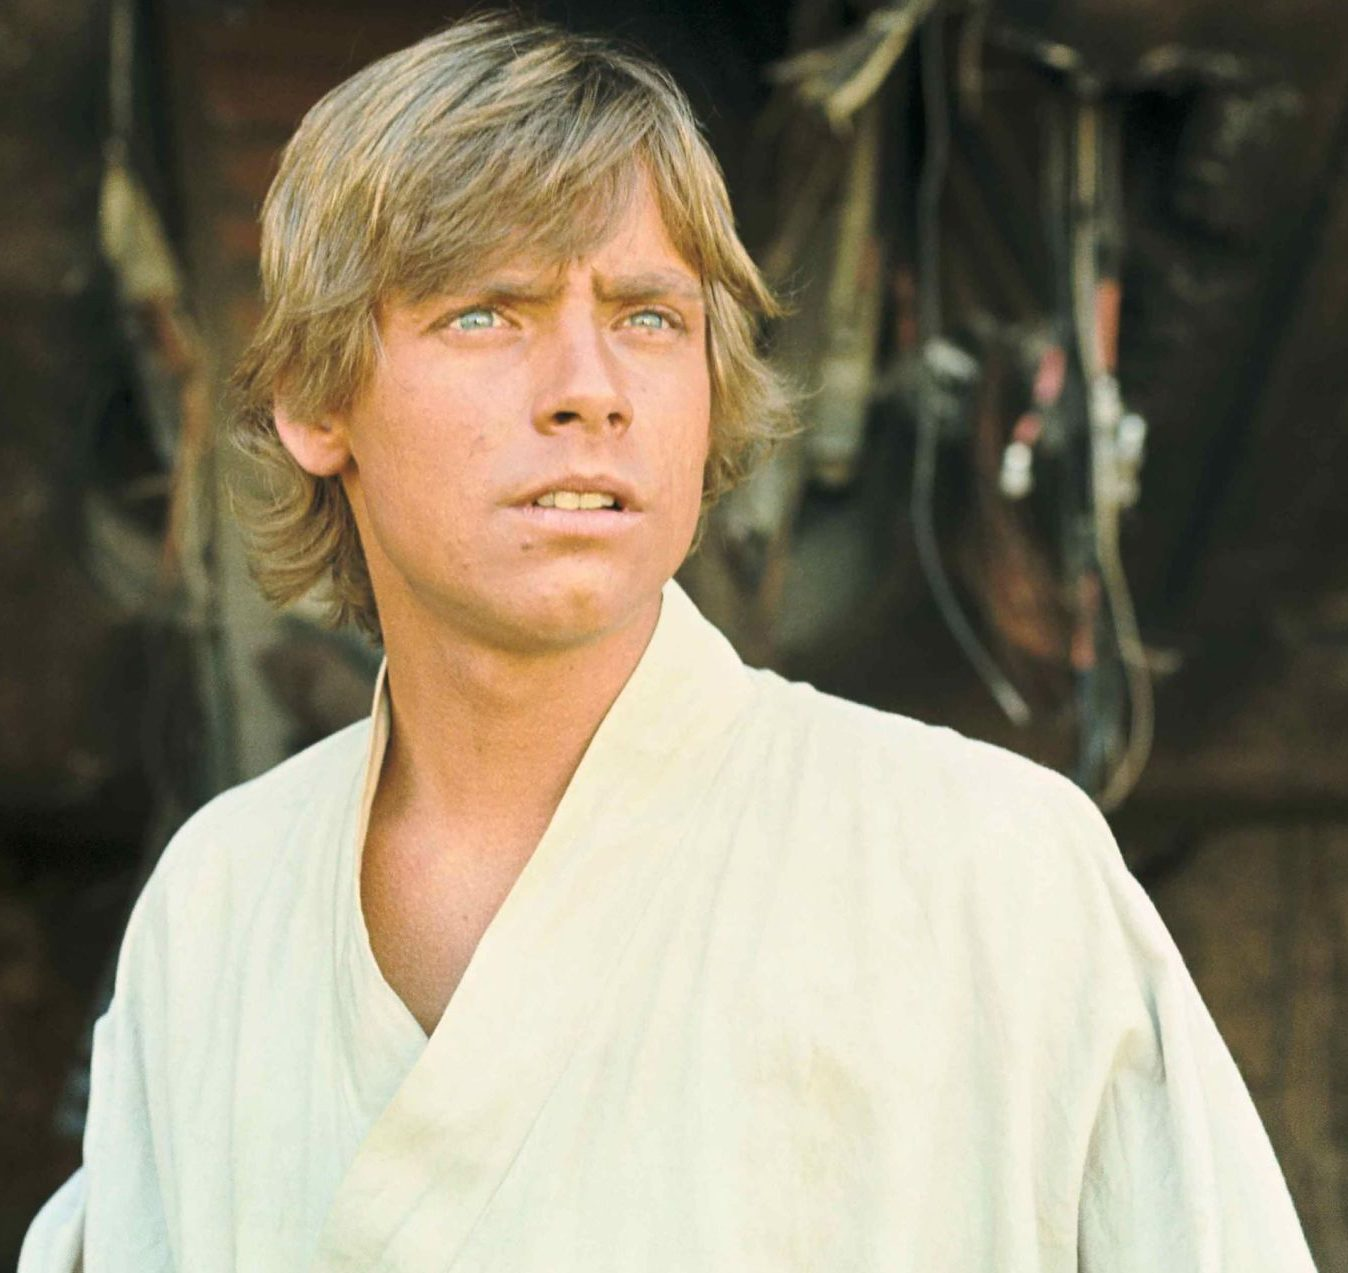 49 e1601541860804 20 Little-Known Facts About The Legendary Mark Hamill